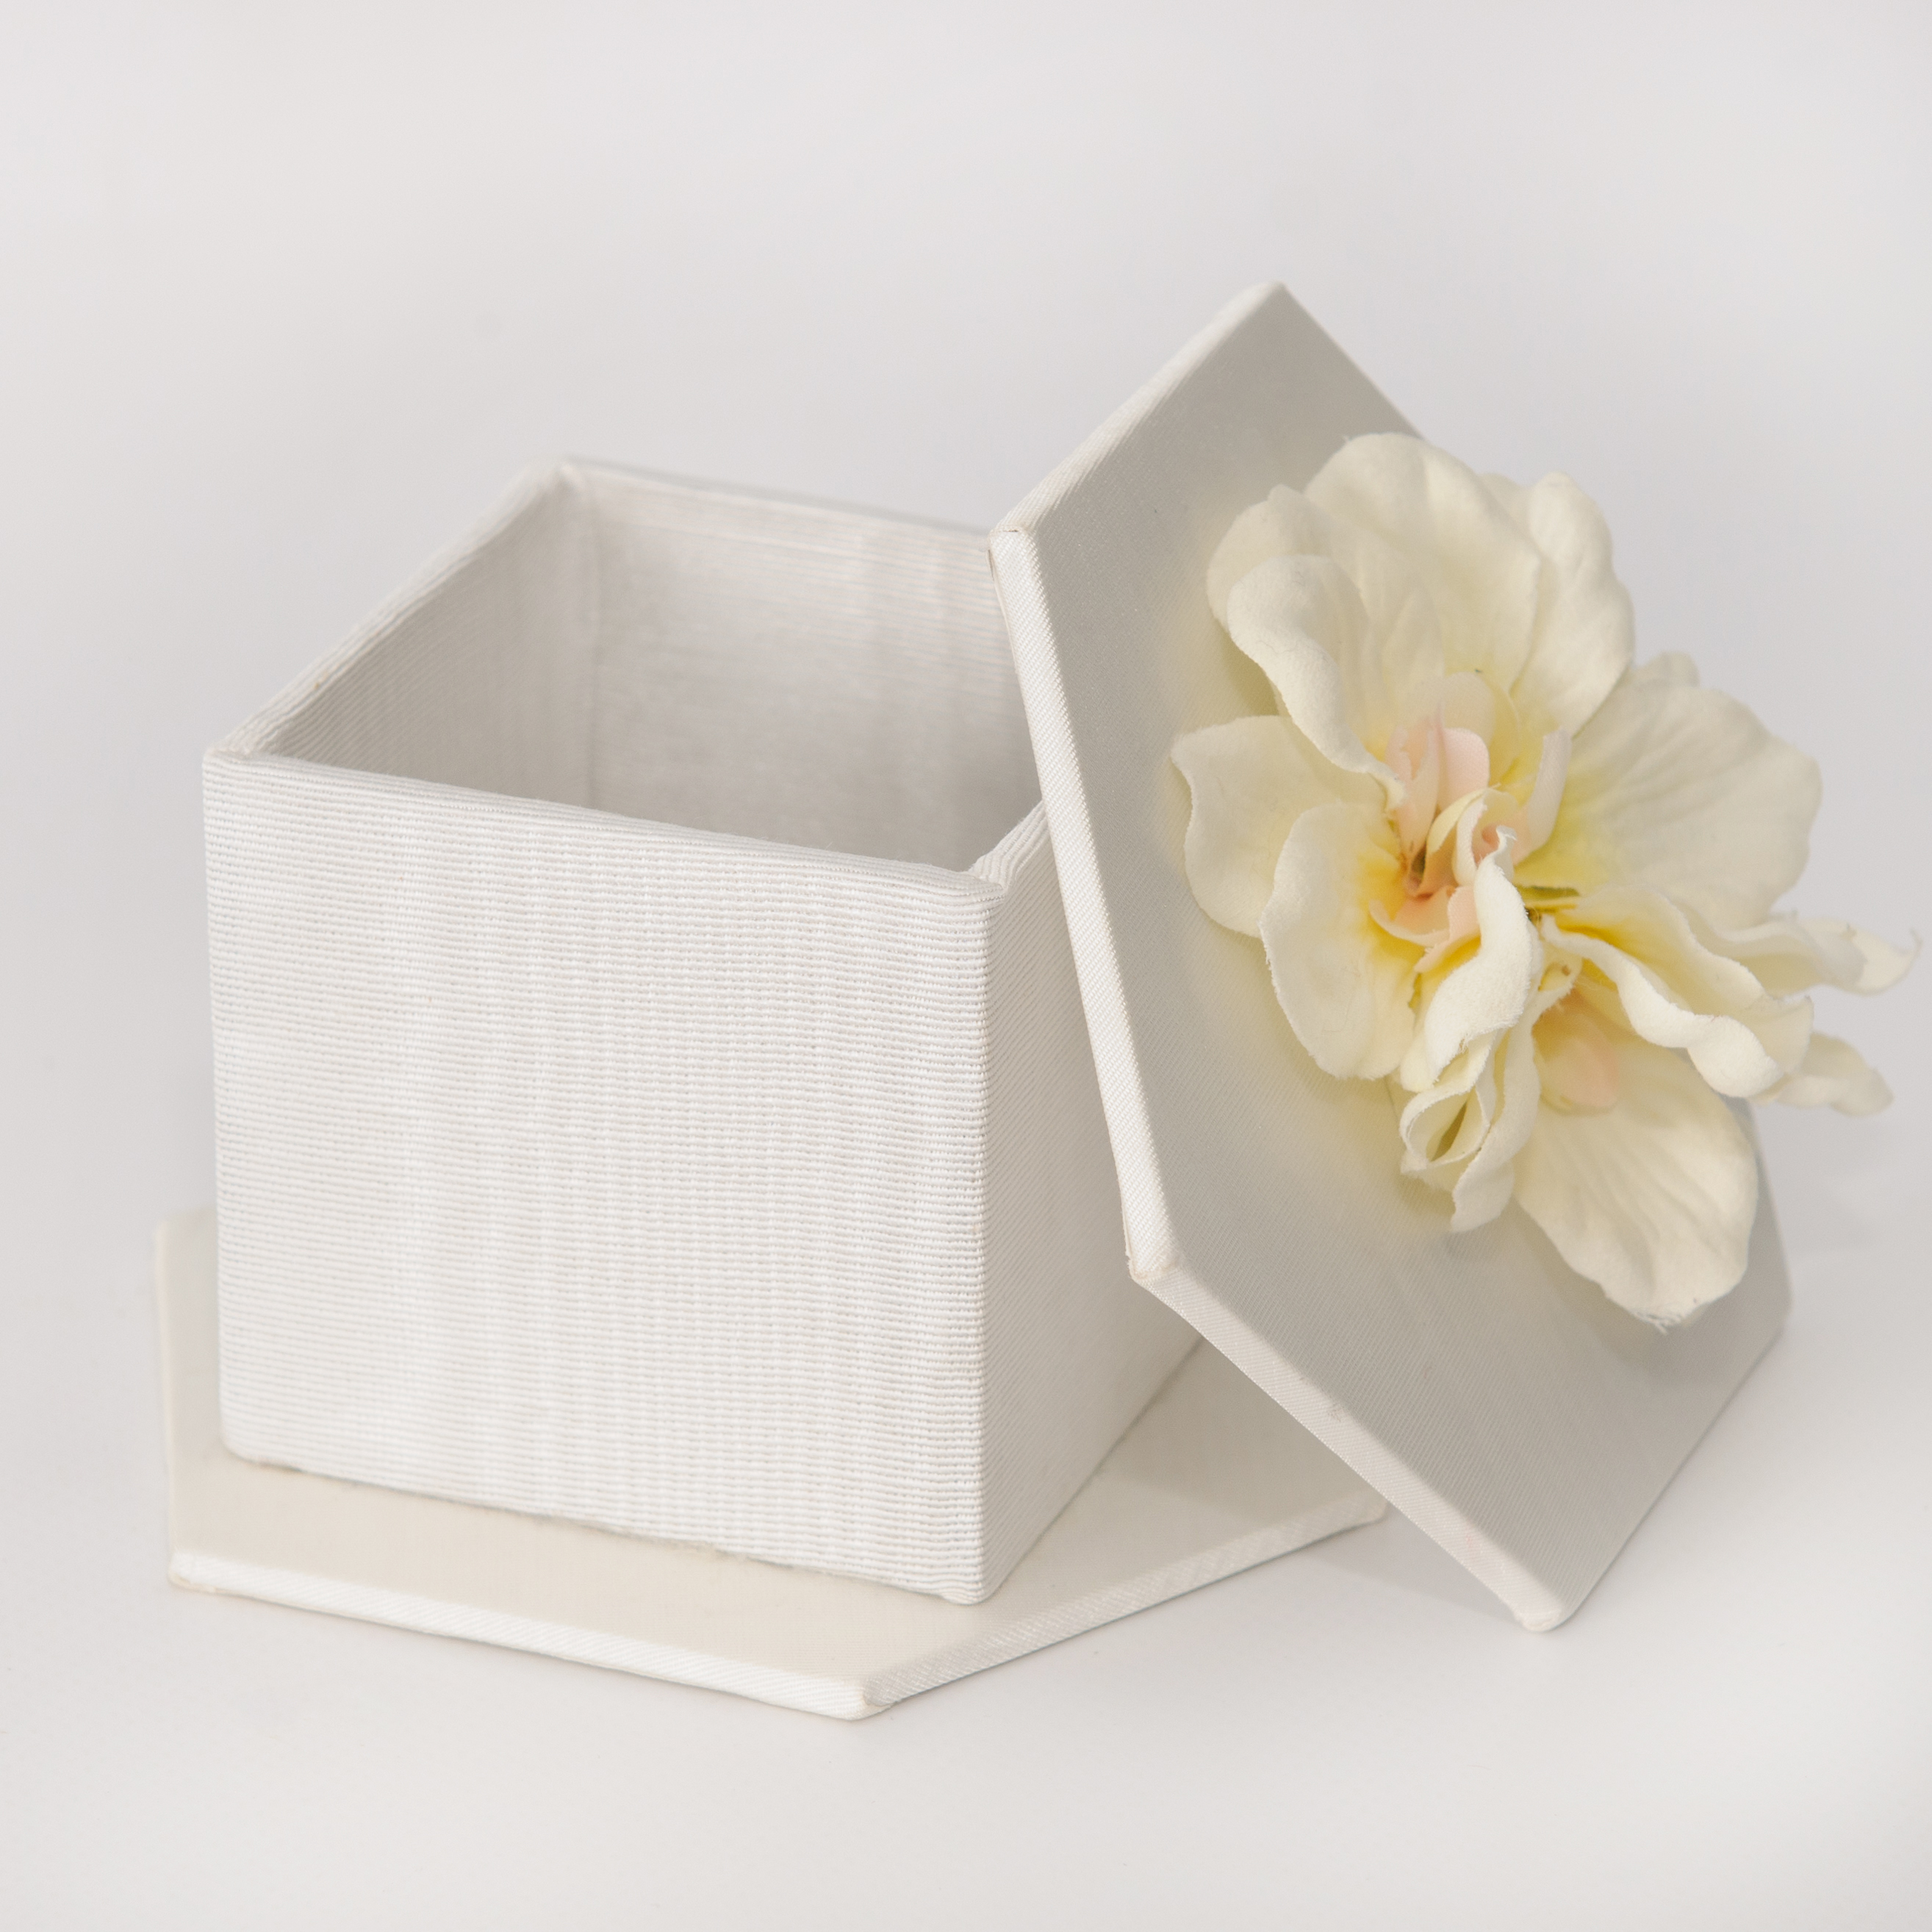 Wedding Gift Box Picture : wedding favor box open